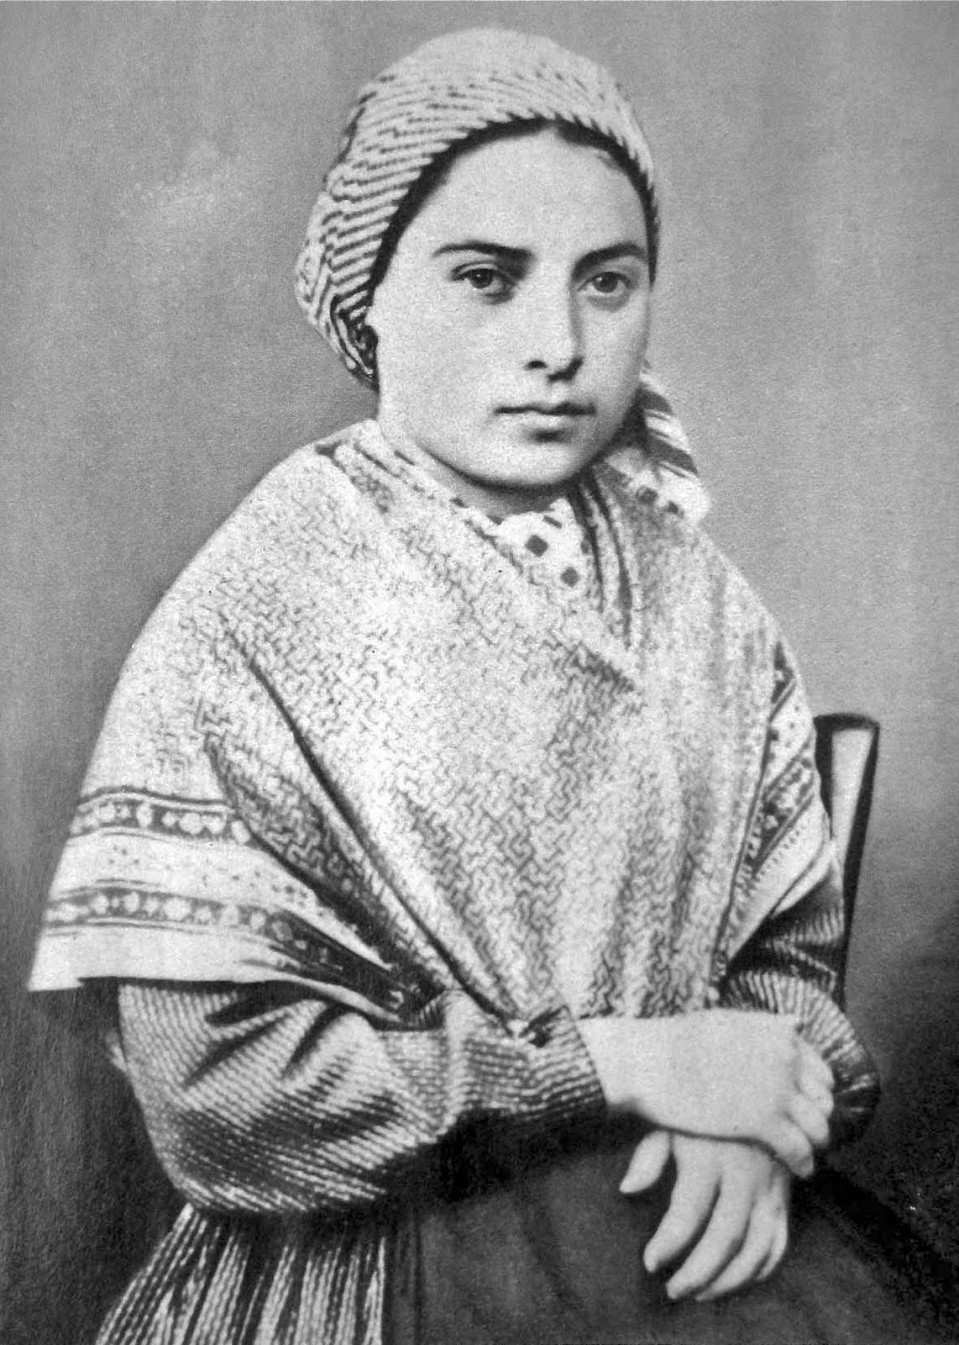 St. Bernadette, Pray for Us!